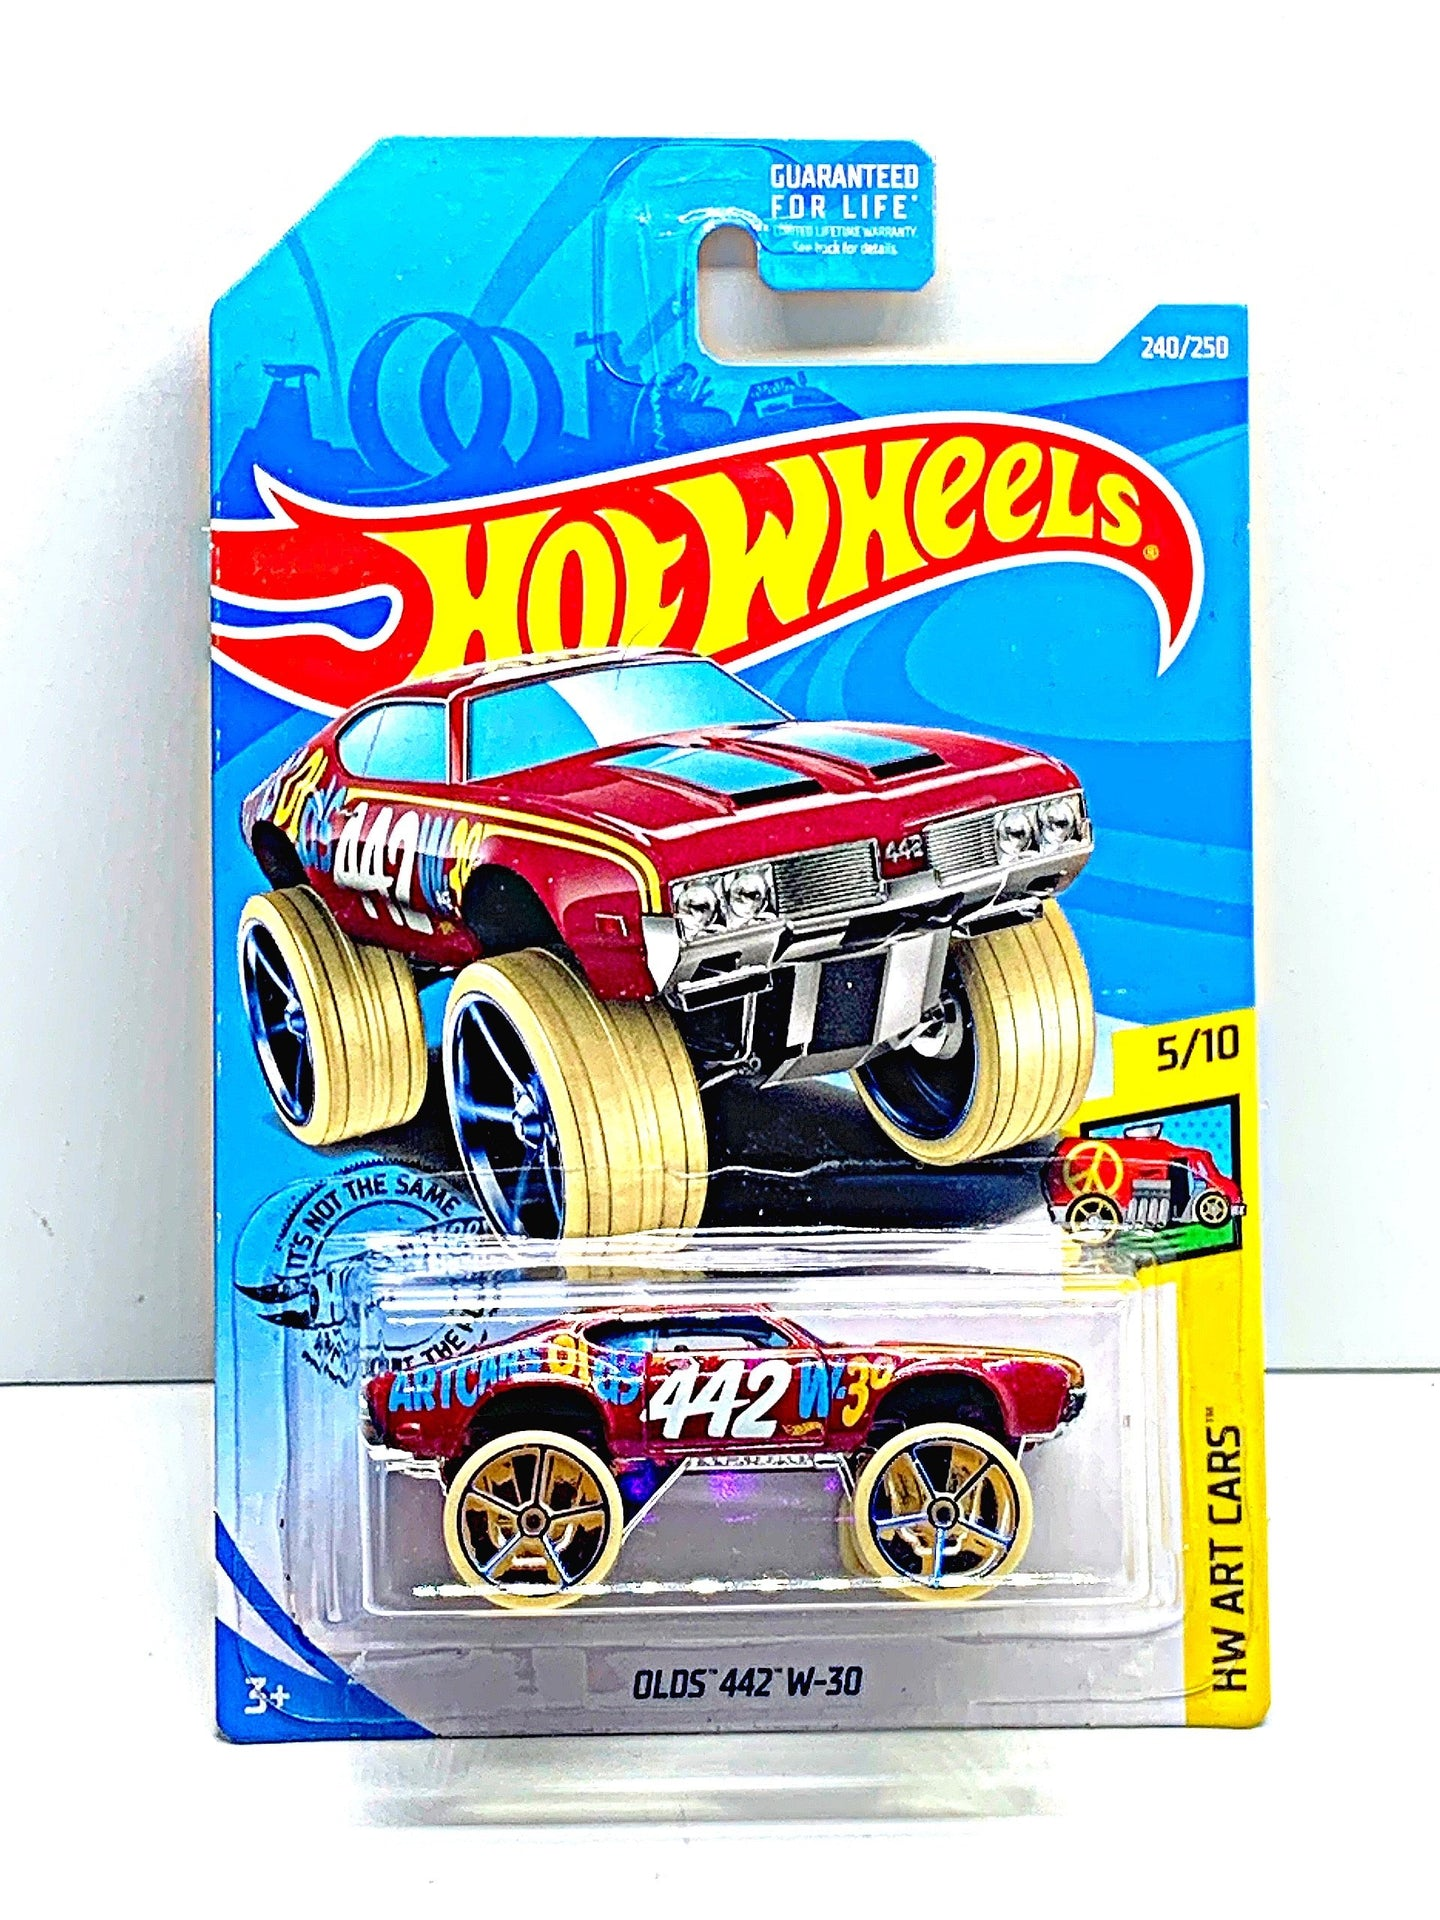 Hot wheels Olds 442 W-30 - Gonzo's Garage